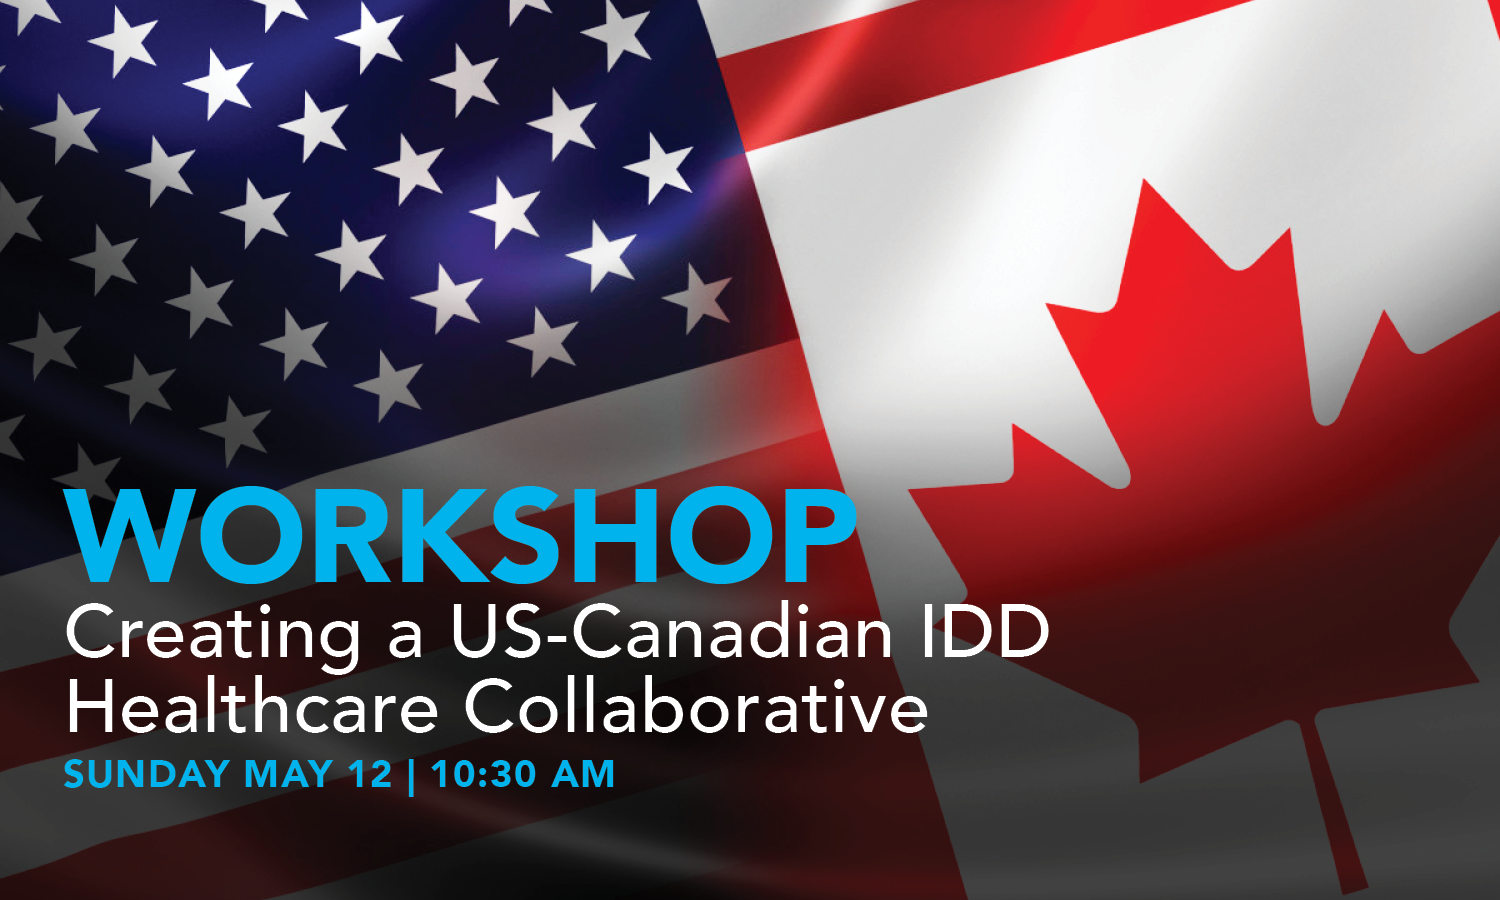 Abstract:  Health disparities and challenges occur despite differences in culture, language and in geography, nor do they stop at the border. This meeting will help bring together IDD leaders in health and supports from both the United States as well as in Canada. There are great opportunities in front of us to work together to help tackle common concerns and issues which exist in both countries.